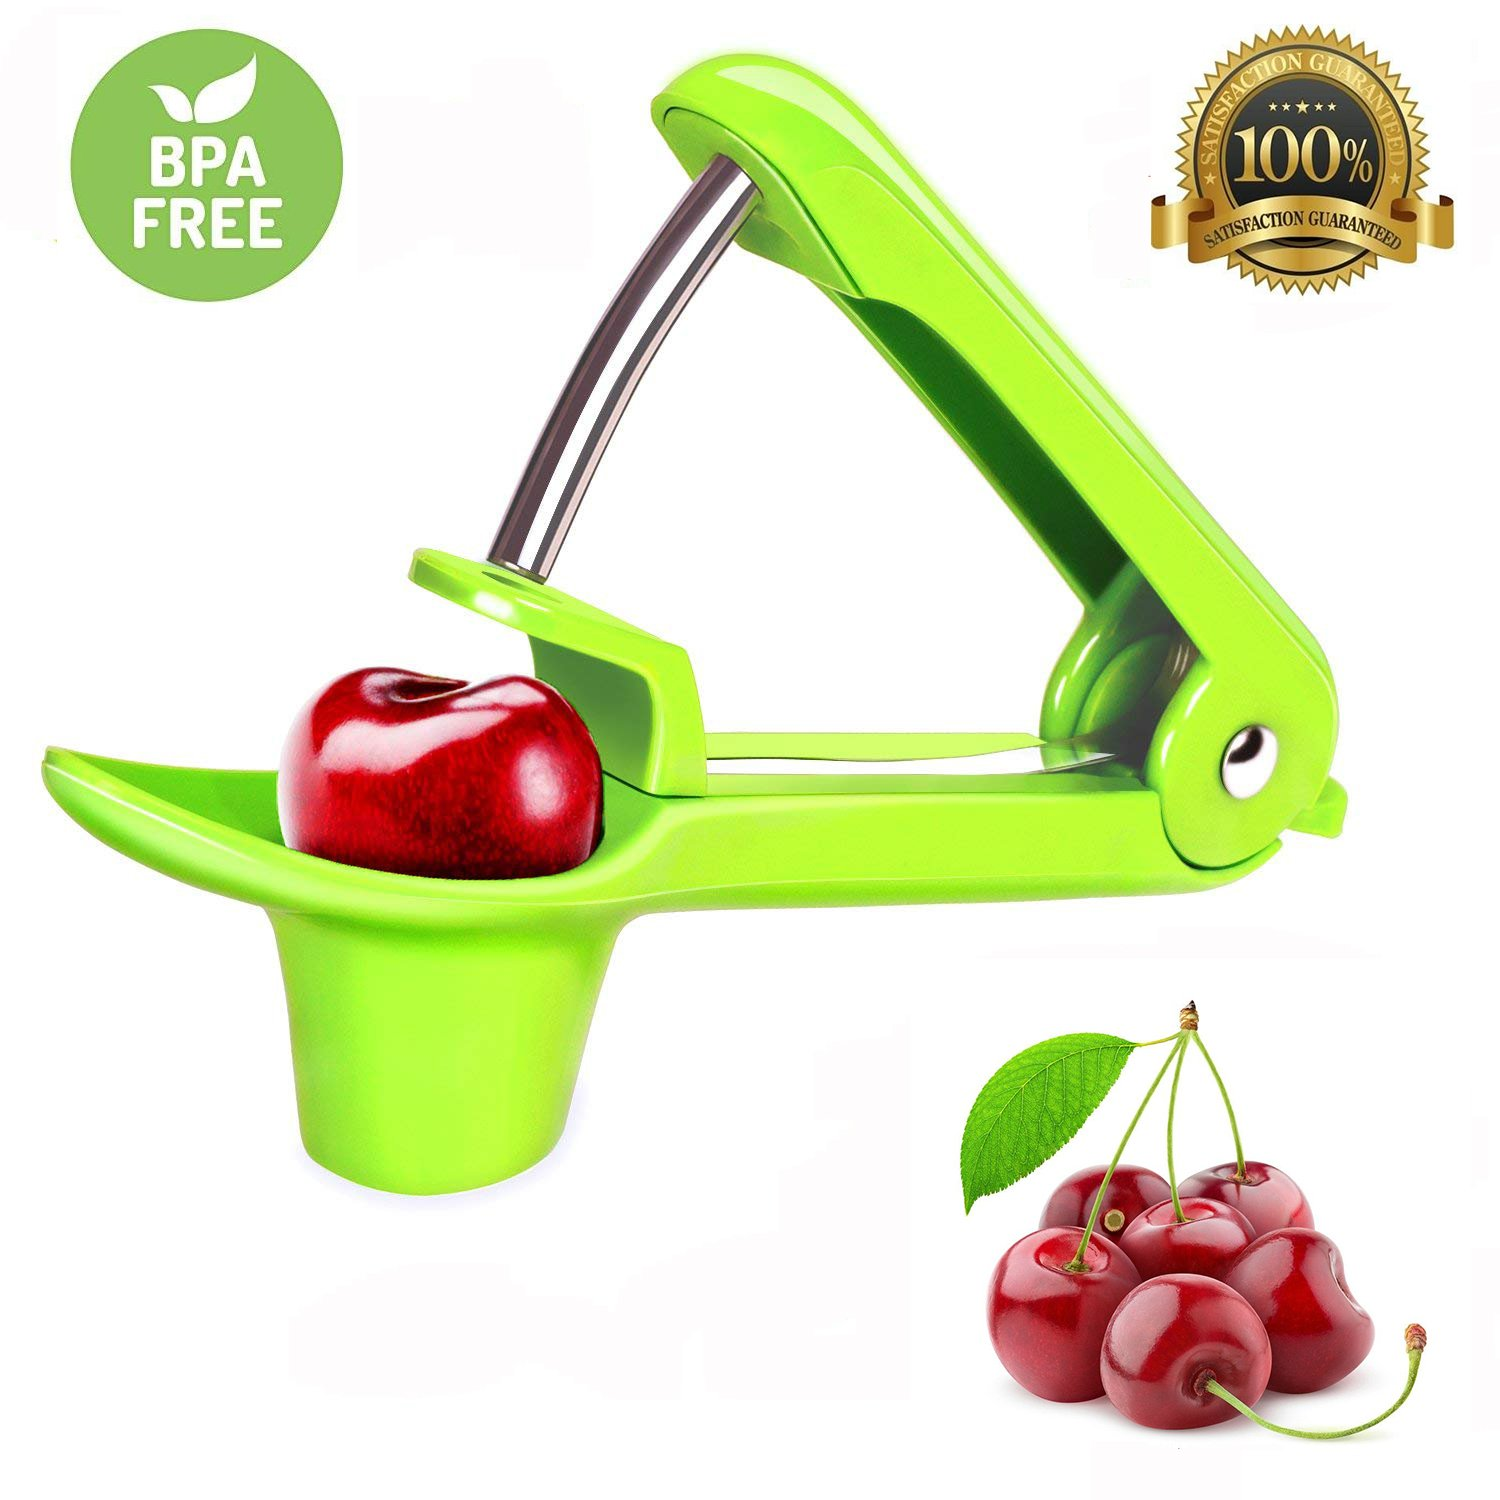 Cherry Pitter– Tekcast Olive and Cherry Pitter Remover Stoner Tool with Food-Grade Silicone Cup, Space-Saving Lock Design and Lengthened Splatter Shield Dishwasher Safe TK-P